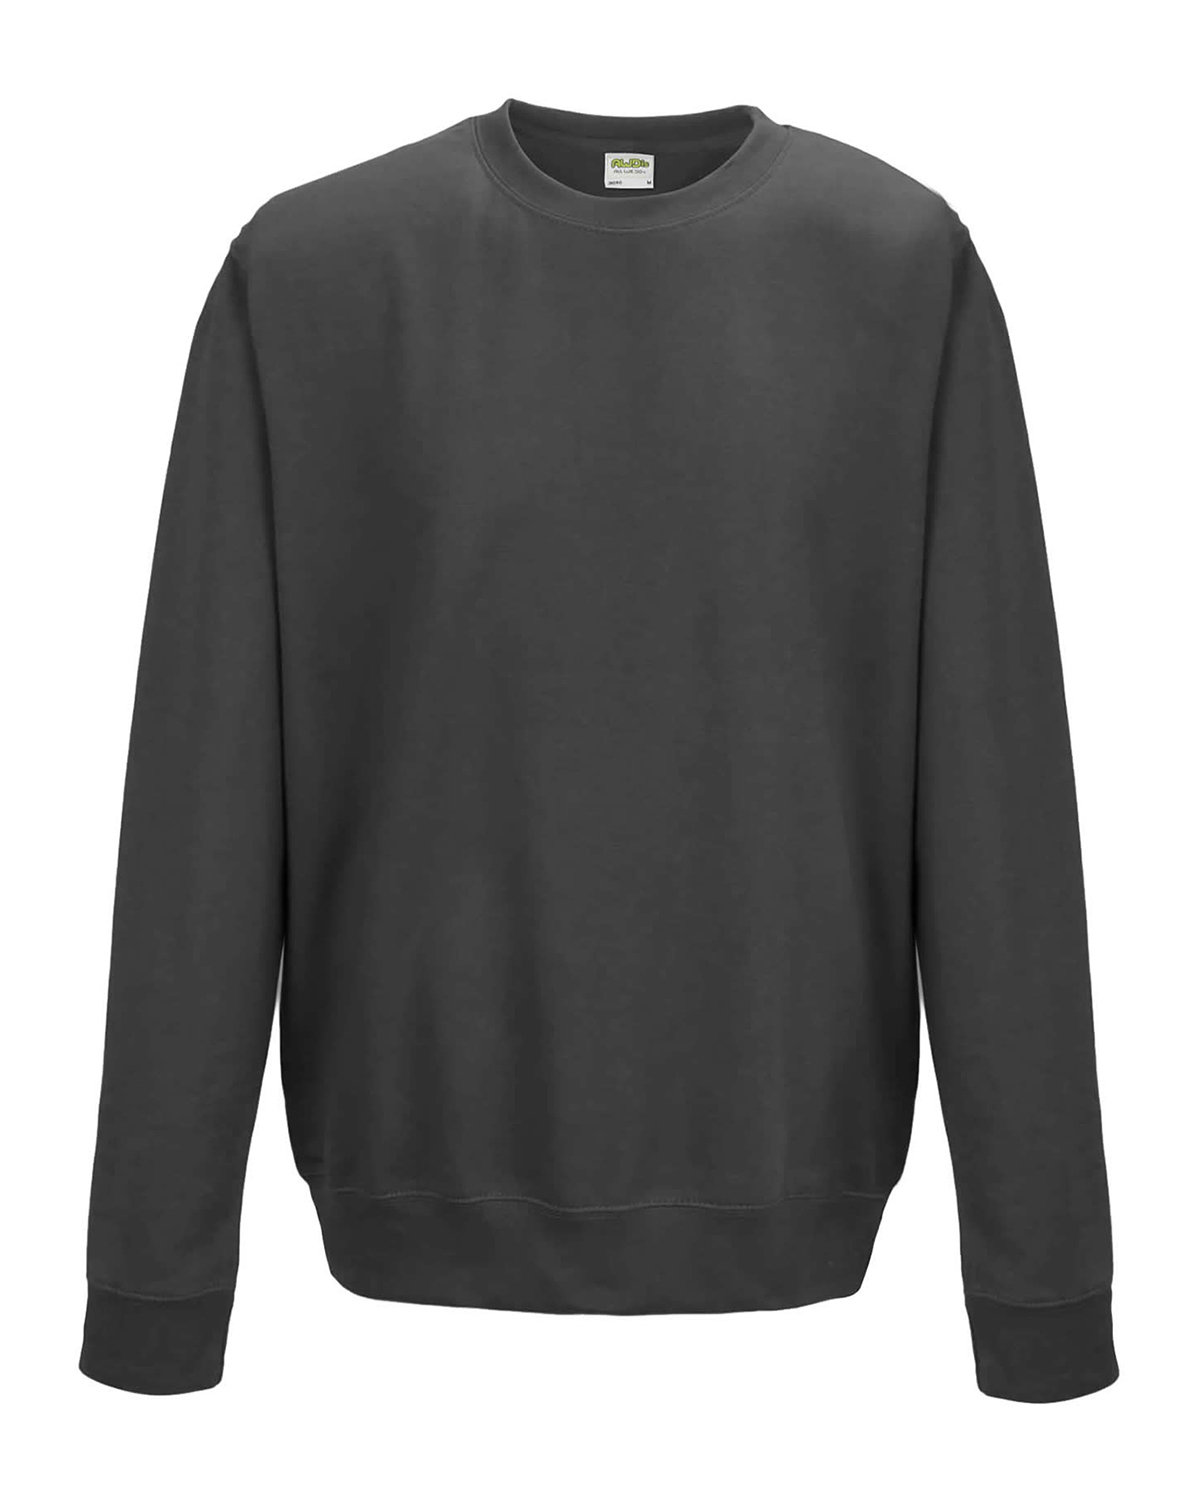 Just Hoods By AWDis Adult 80/20 Midweight College Crewneck Sweatshirt CHARCOAL